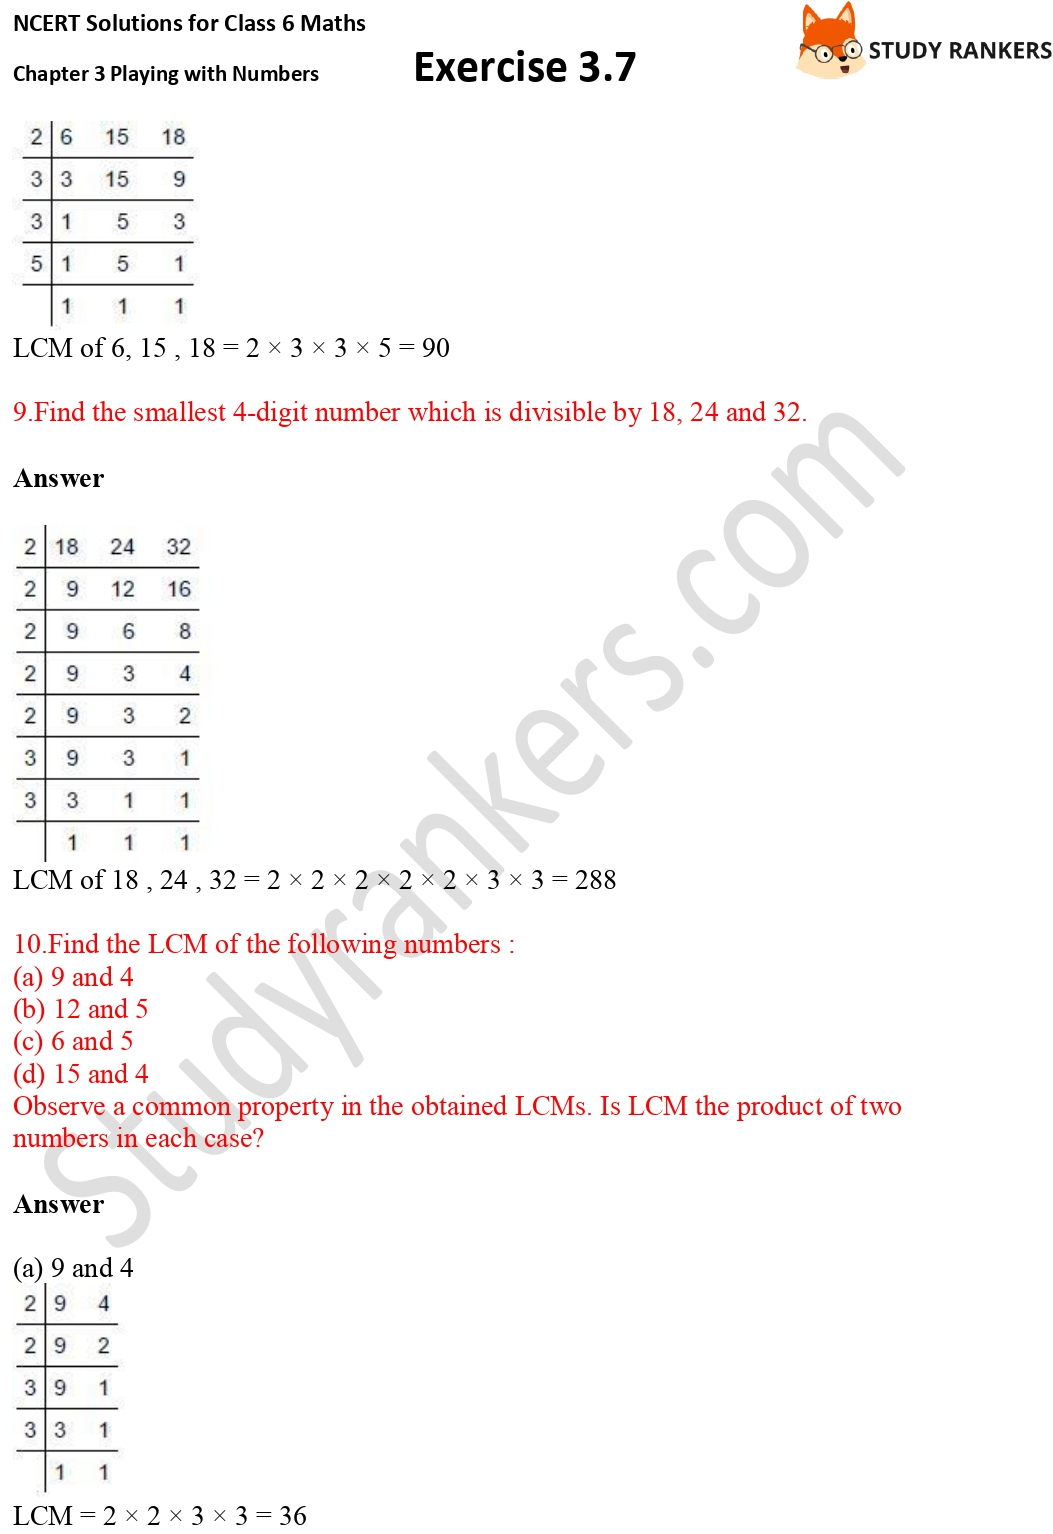 NCERT Solutions for Class 6 Maths Chapter 3 Playing with Numbers Exercise 3.7 Part 4